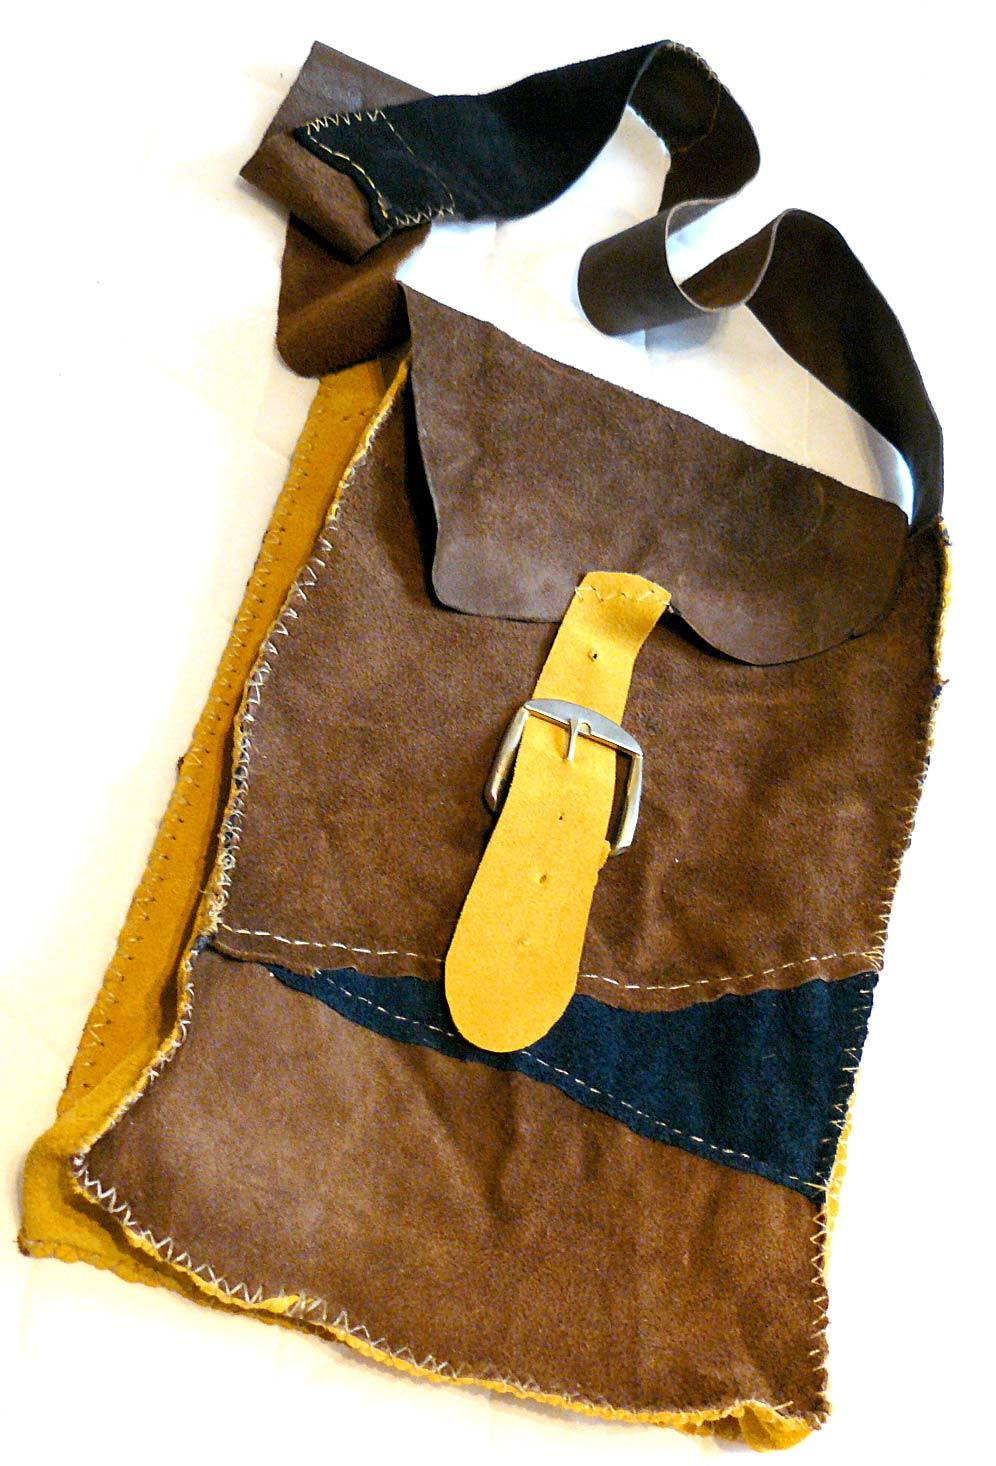 leather bag hand-stitched from upholstery leather scraps.